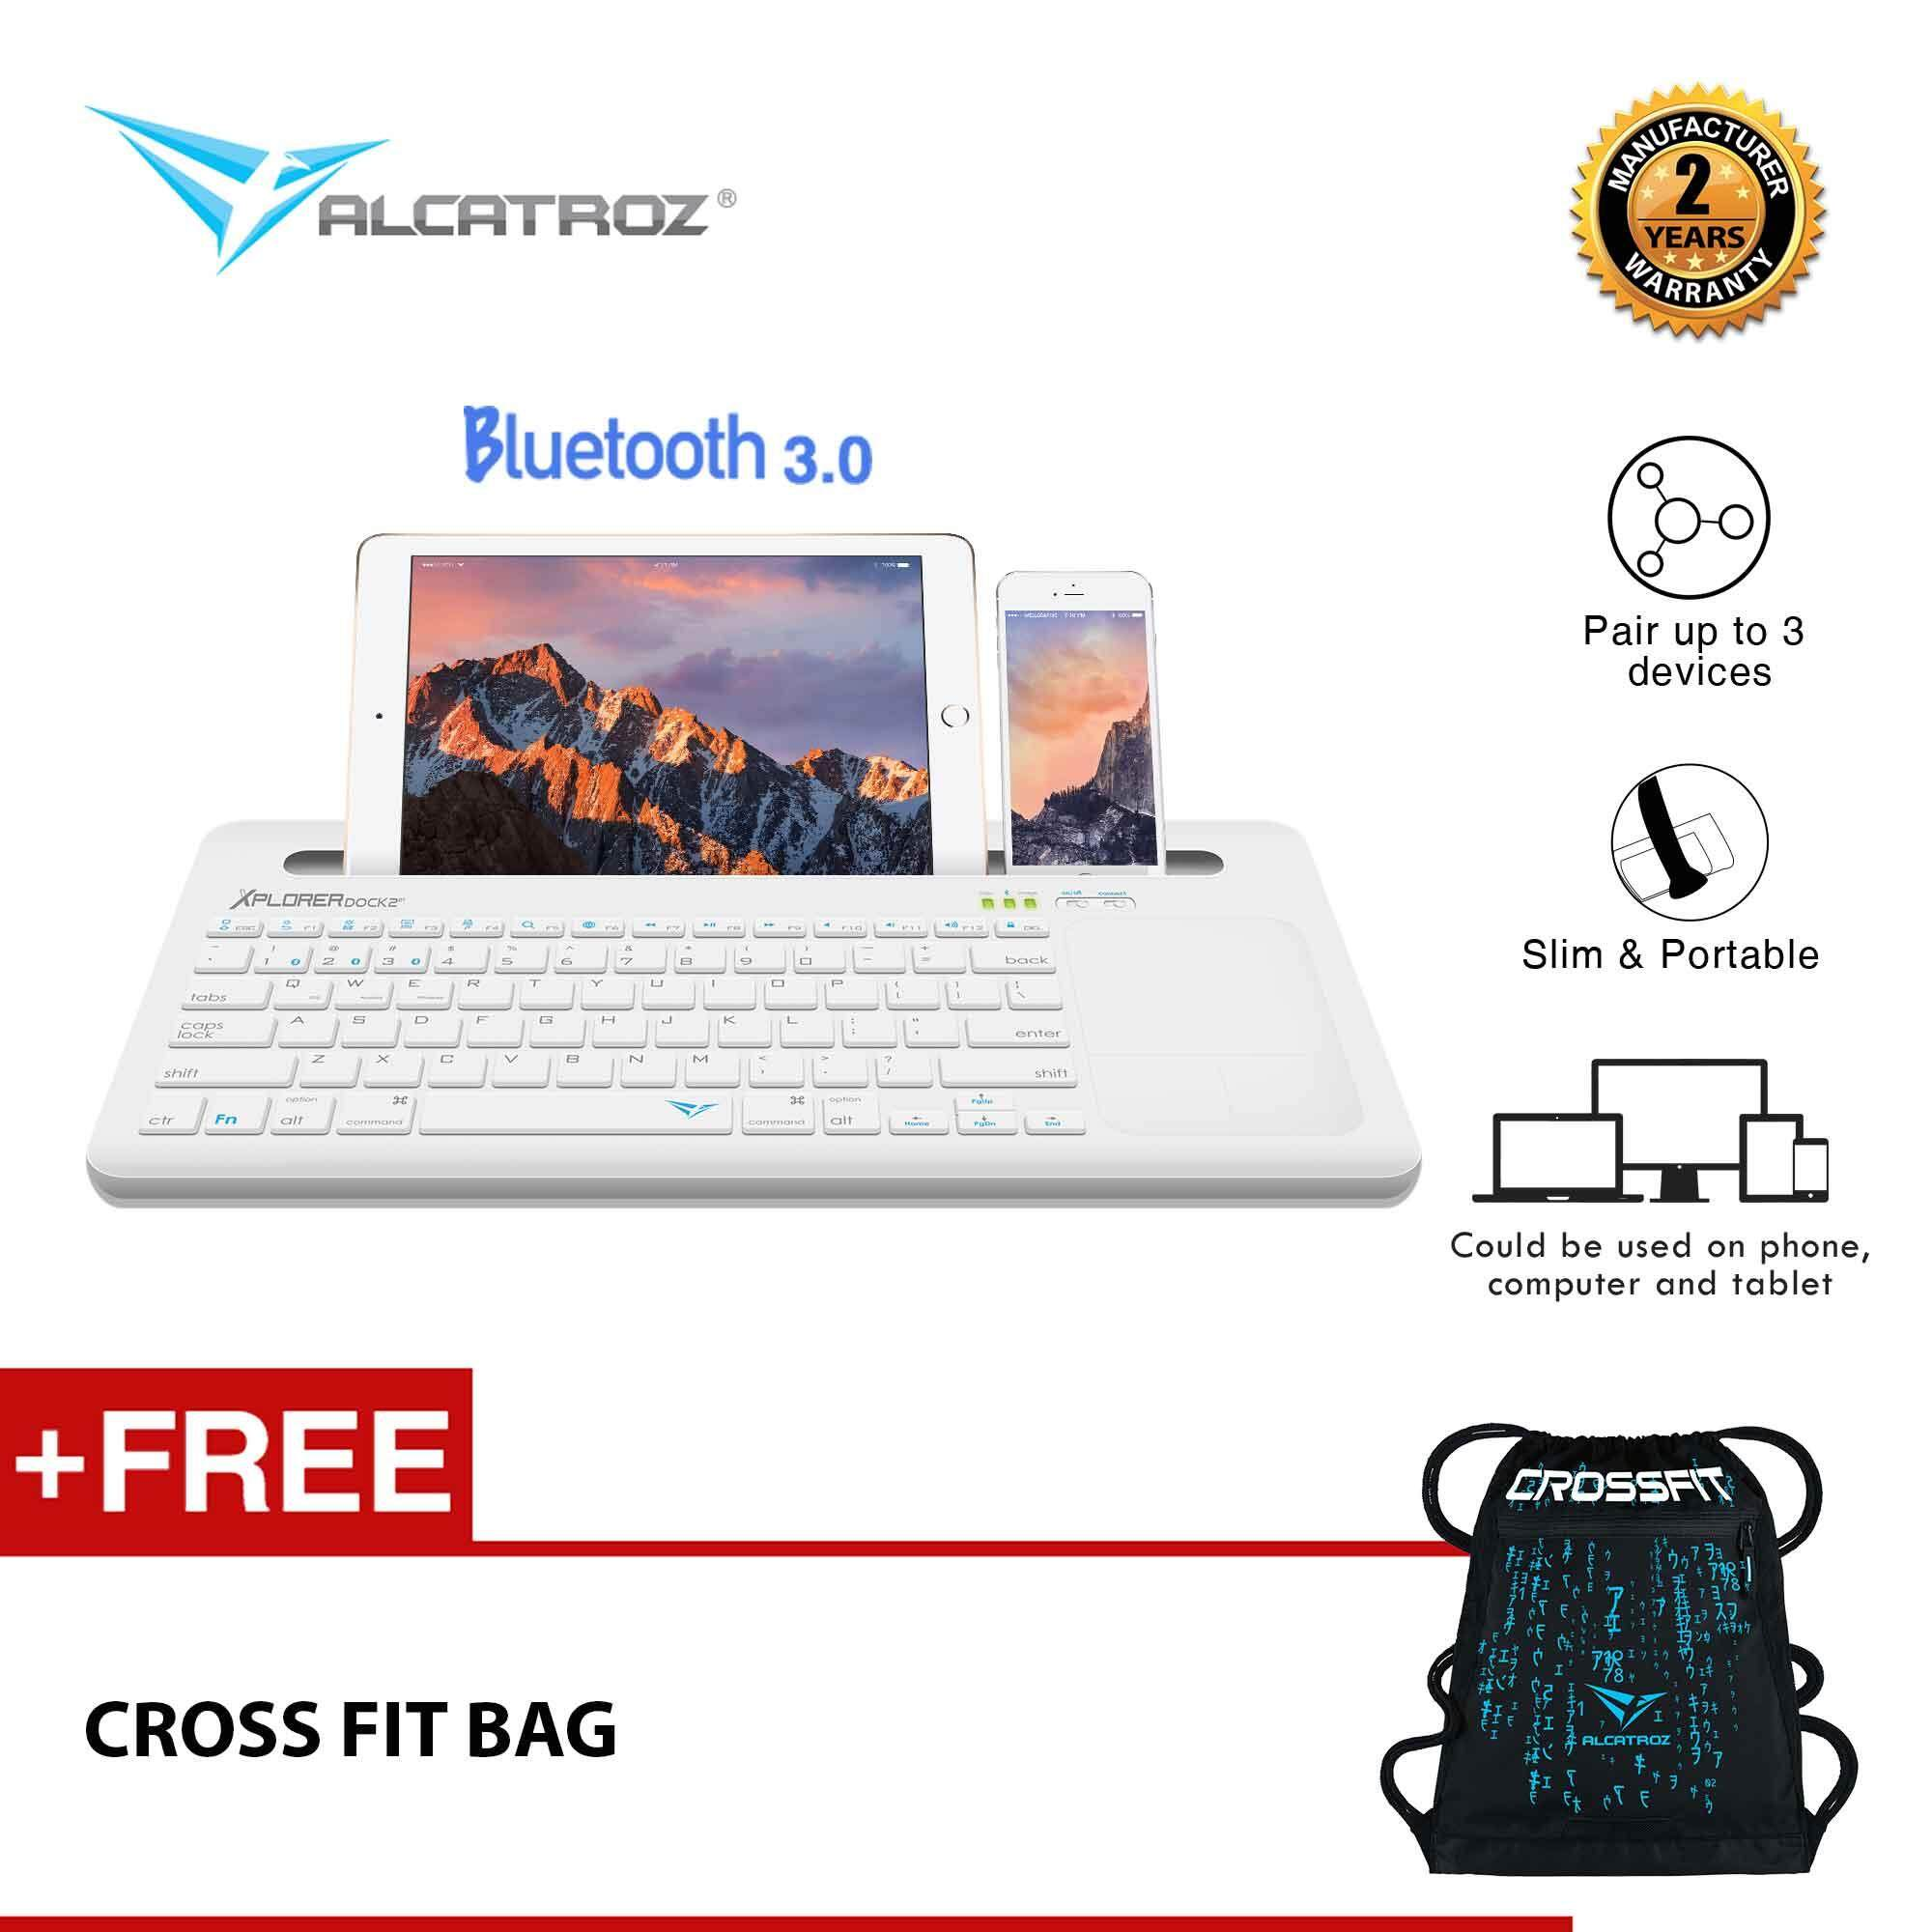 Alcatroz Xplorer Dock 2 Multi-Device Bluetooth Keyboard Free Cross Fit Bag By Alcatroz